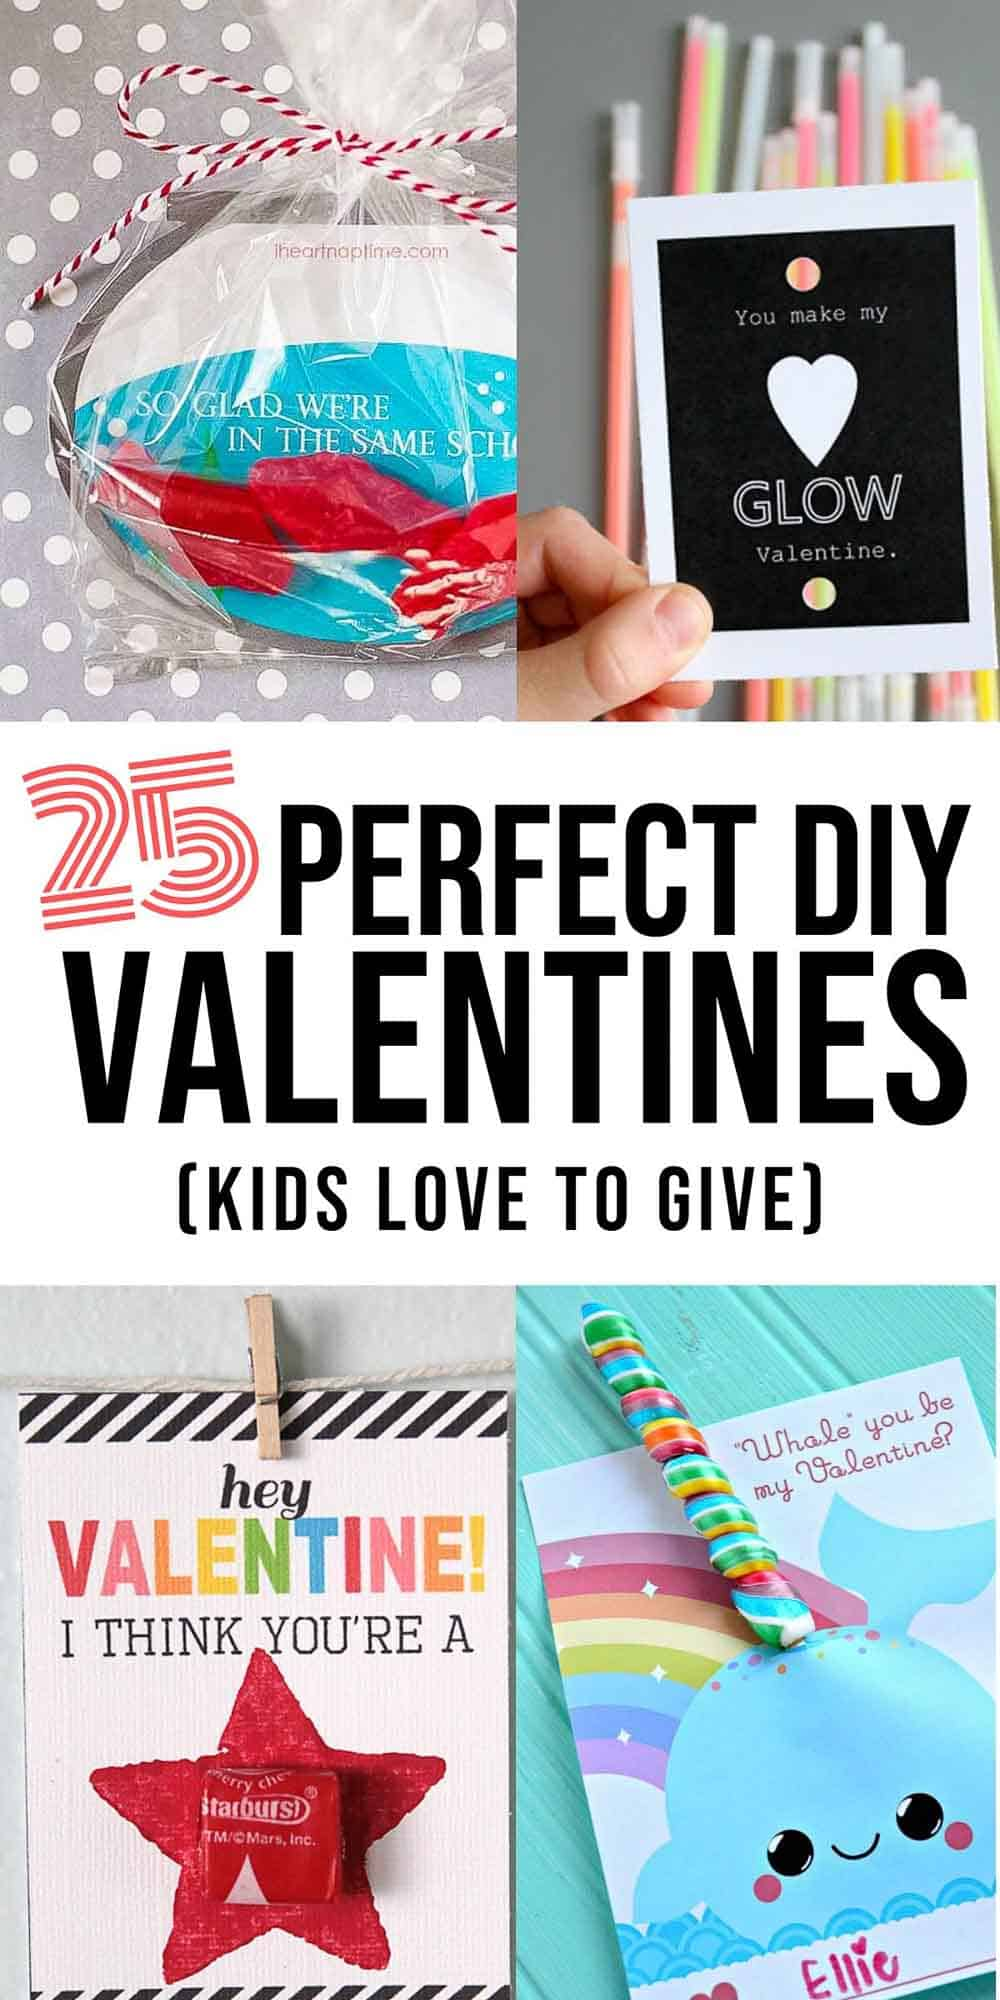 25 Perfect DIY Valentines Kids will Love graphic